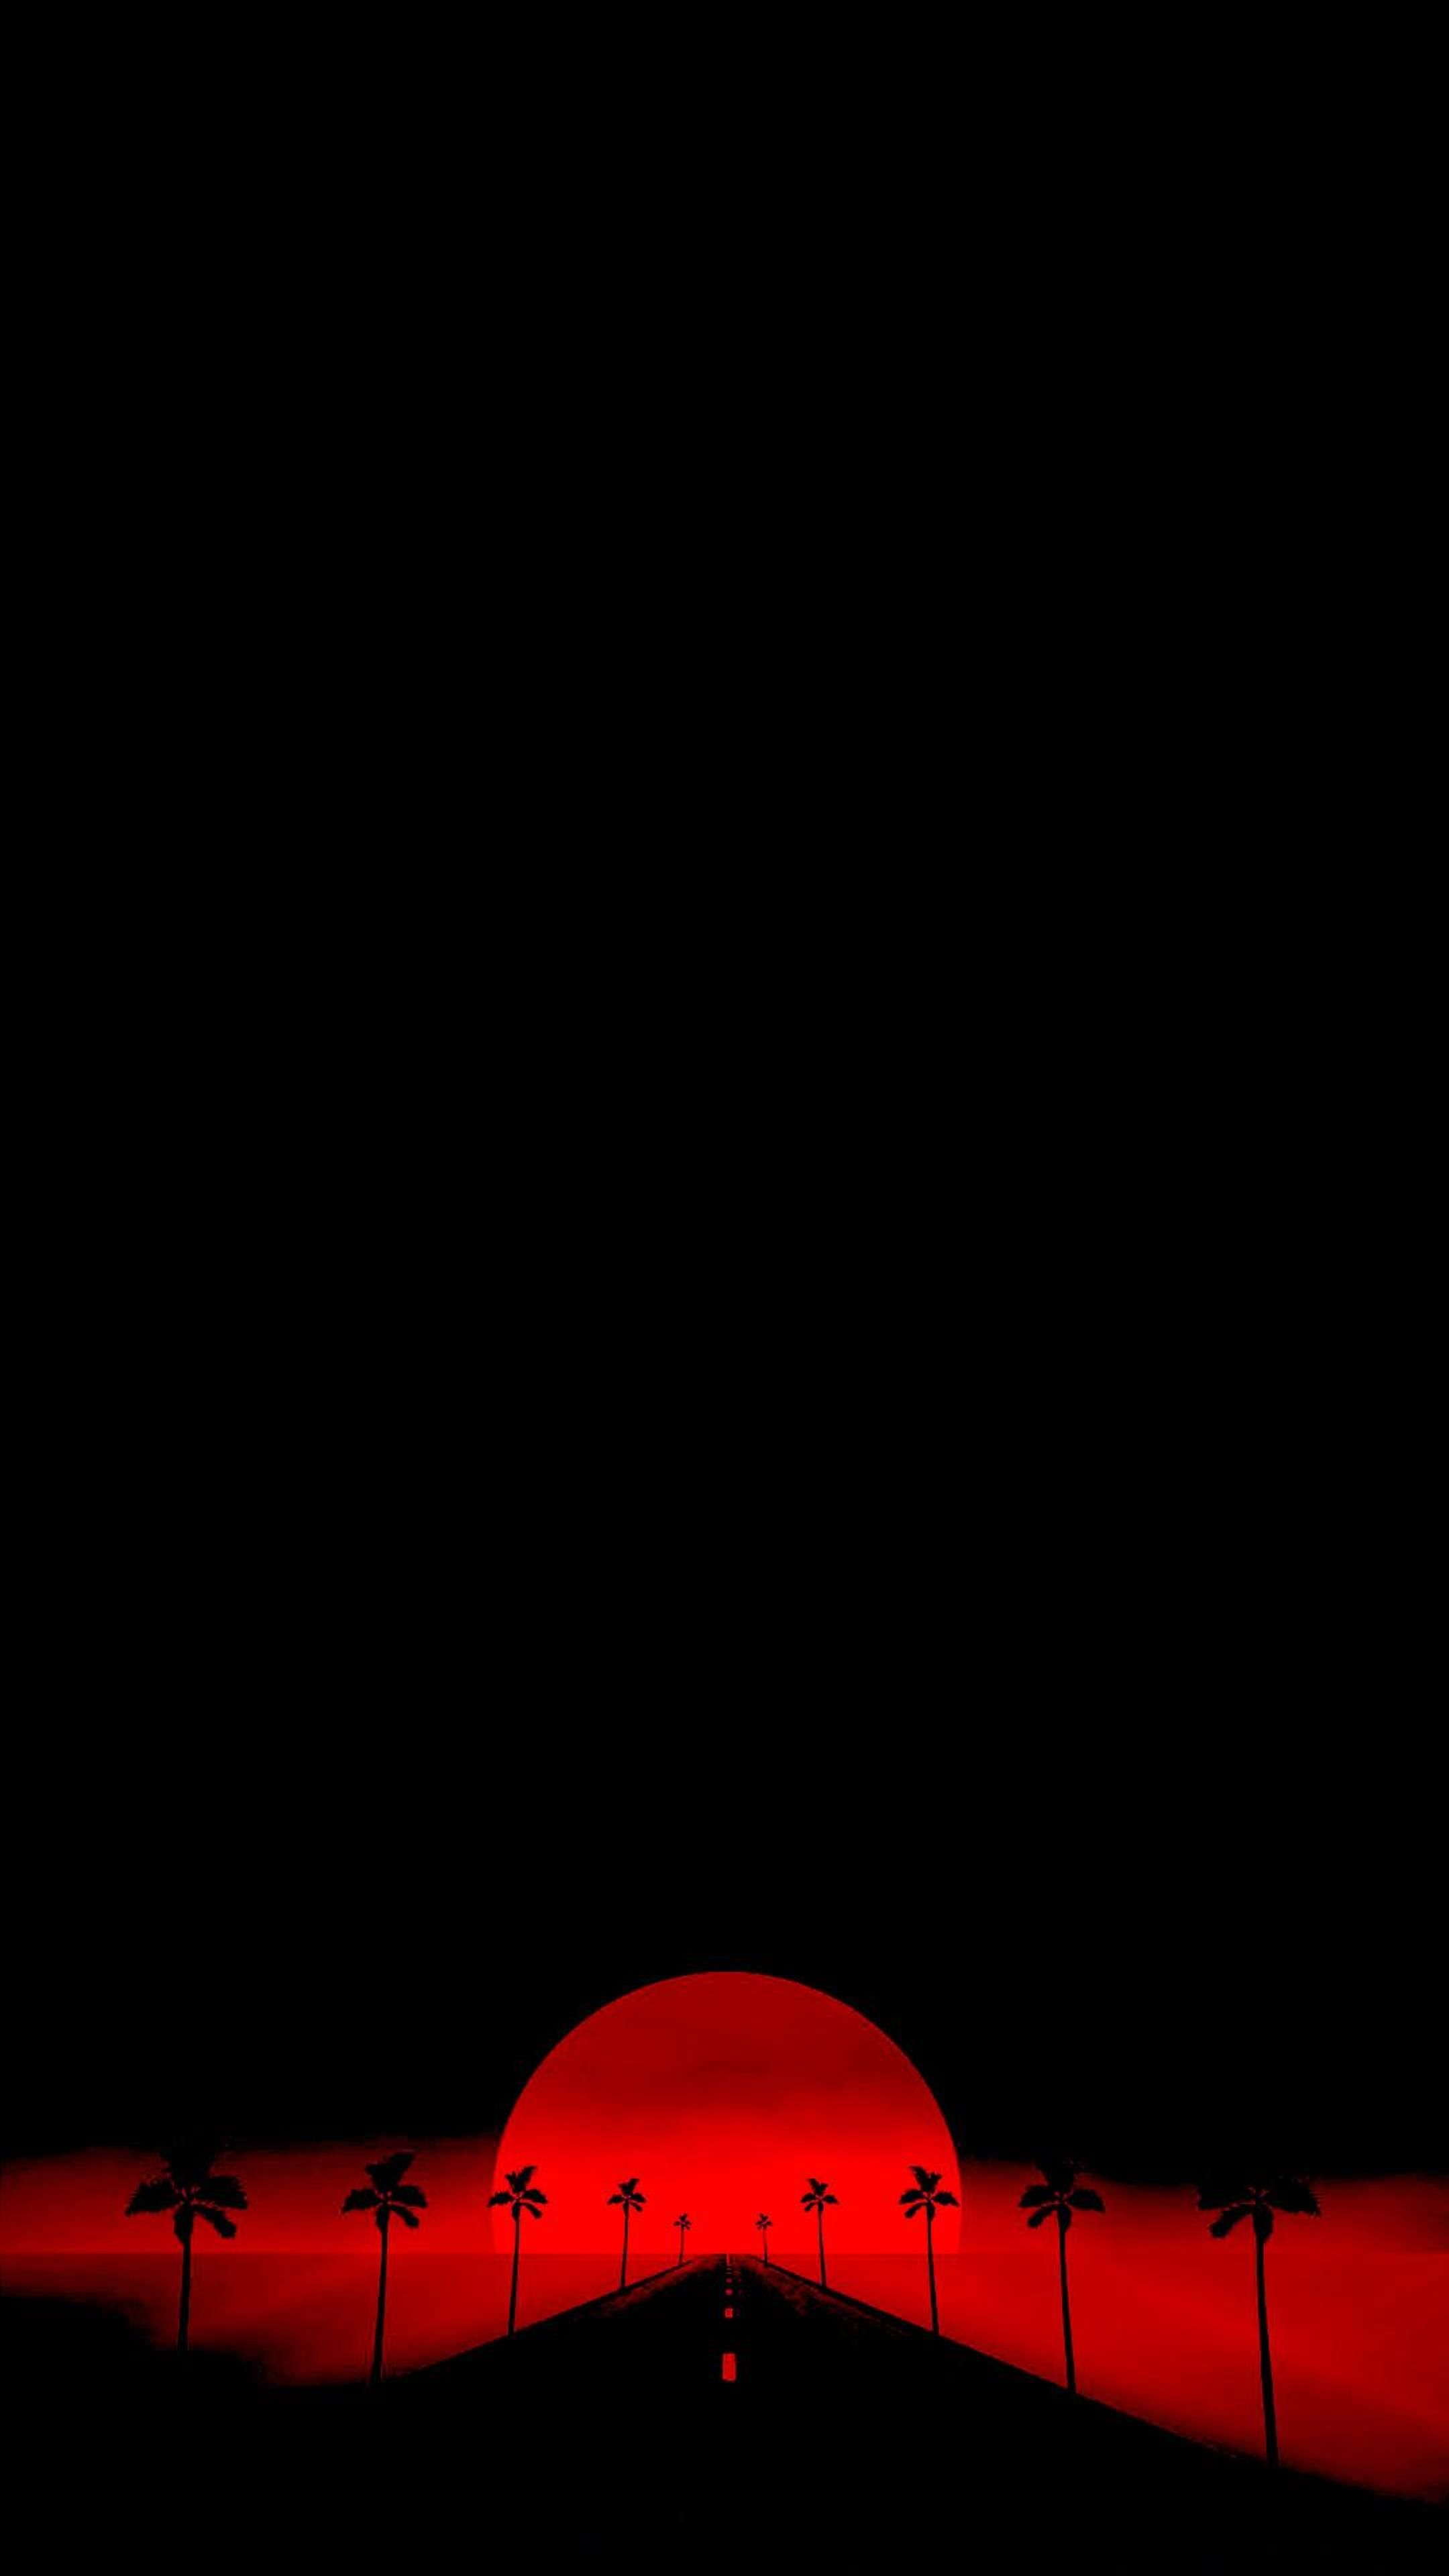 Red And Black Minimalist Wallpaper Posted By Samantha Sellers